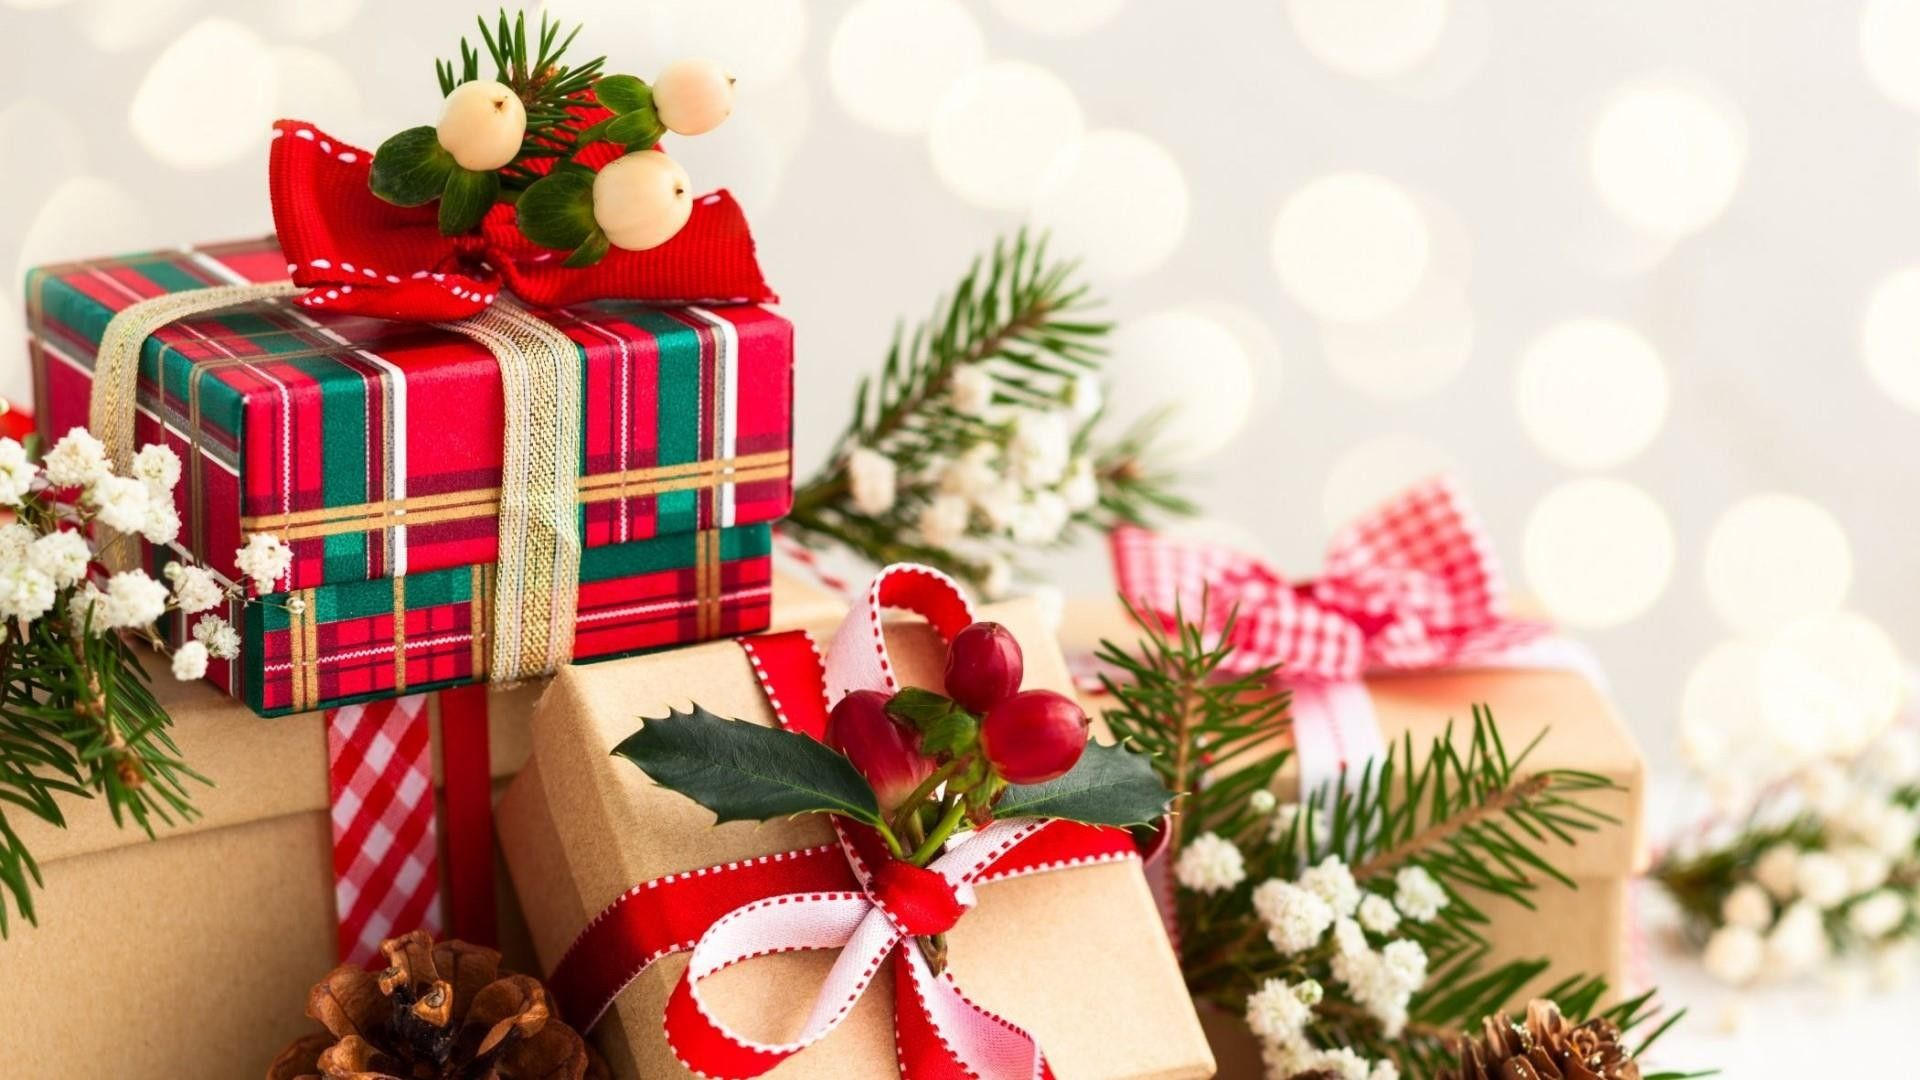 Christmas Presents Wallpapers Top Free Christmas Presents Backgrounds Wallpaperaccess